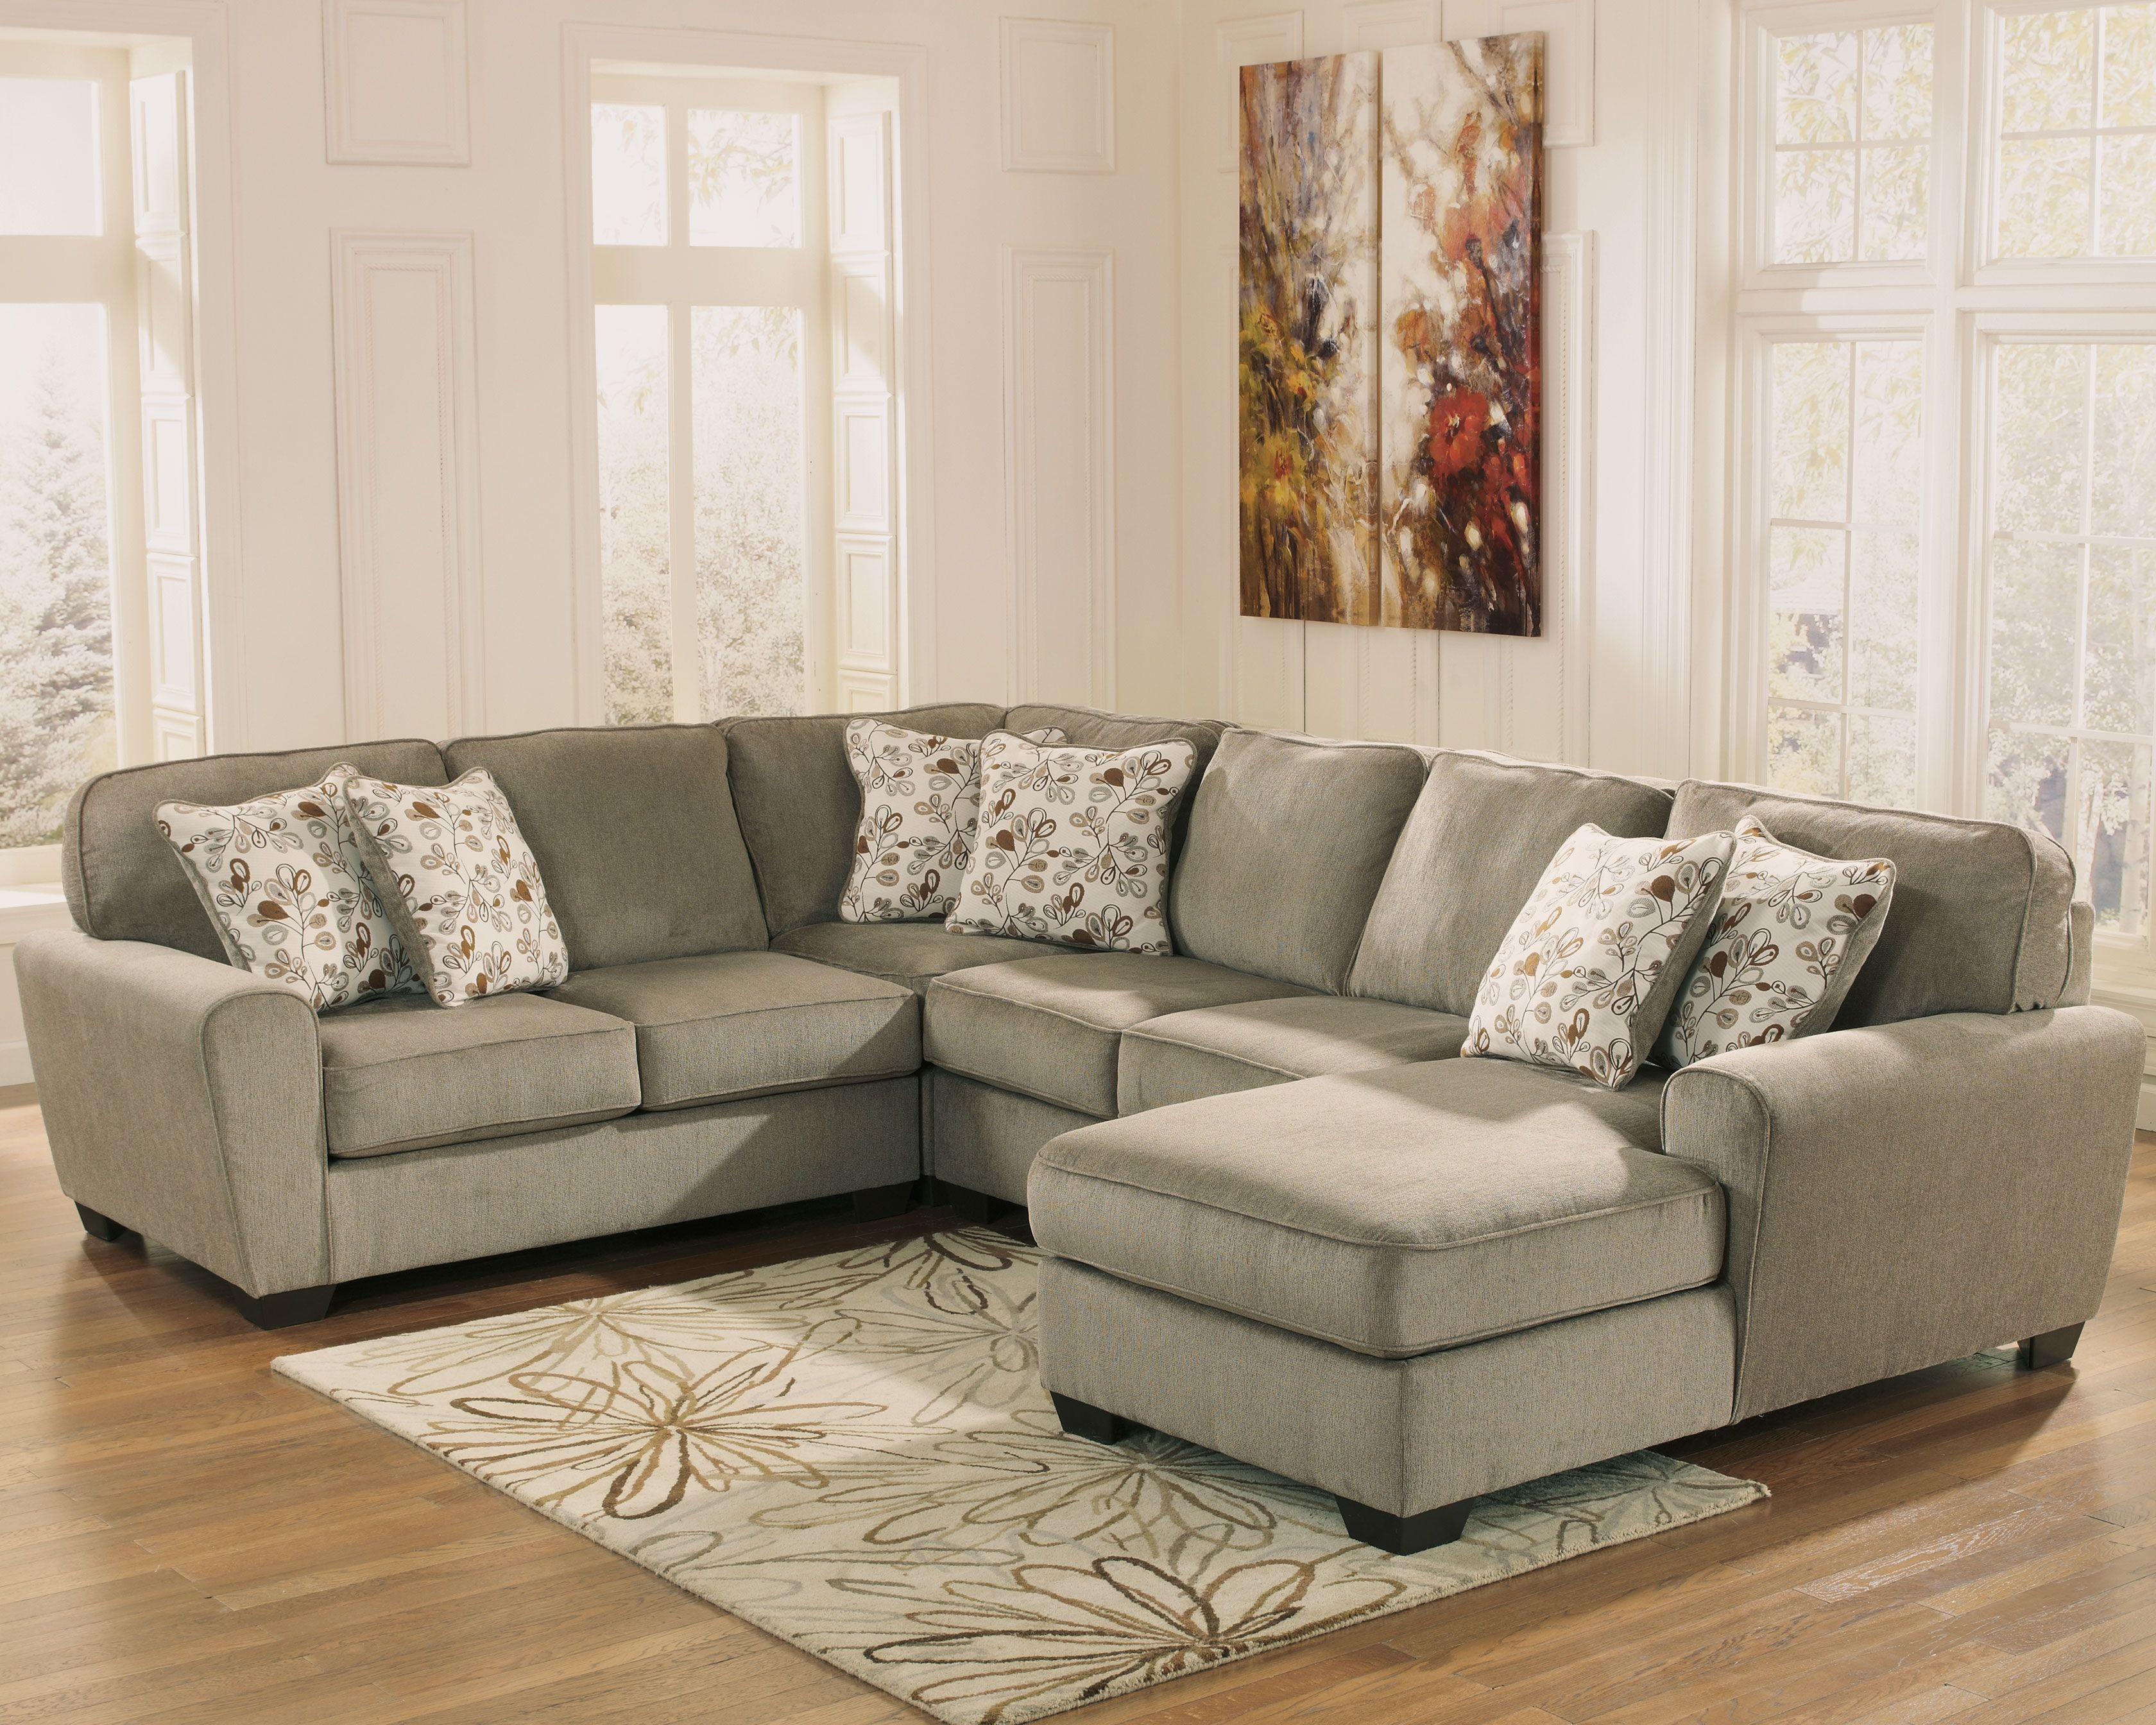 Patola Park 4 Piece Loveseat Sectional Patina Living Room